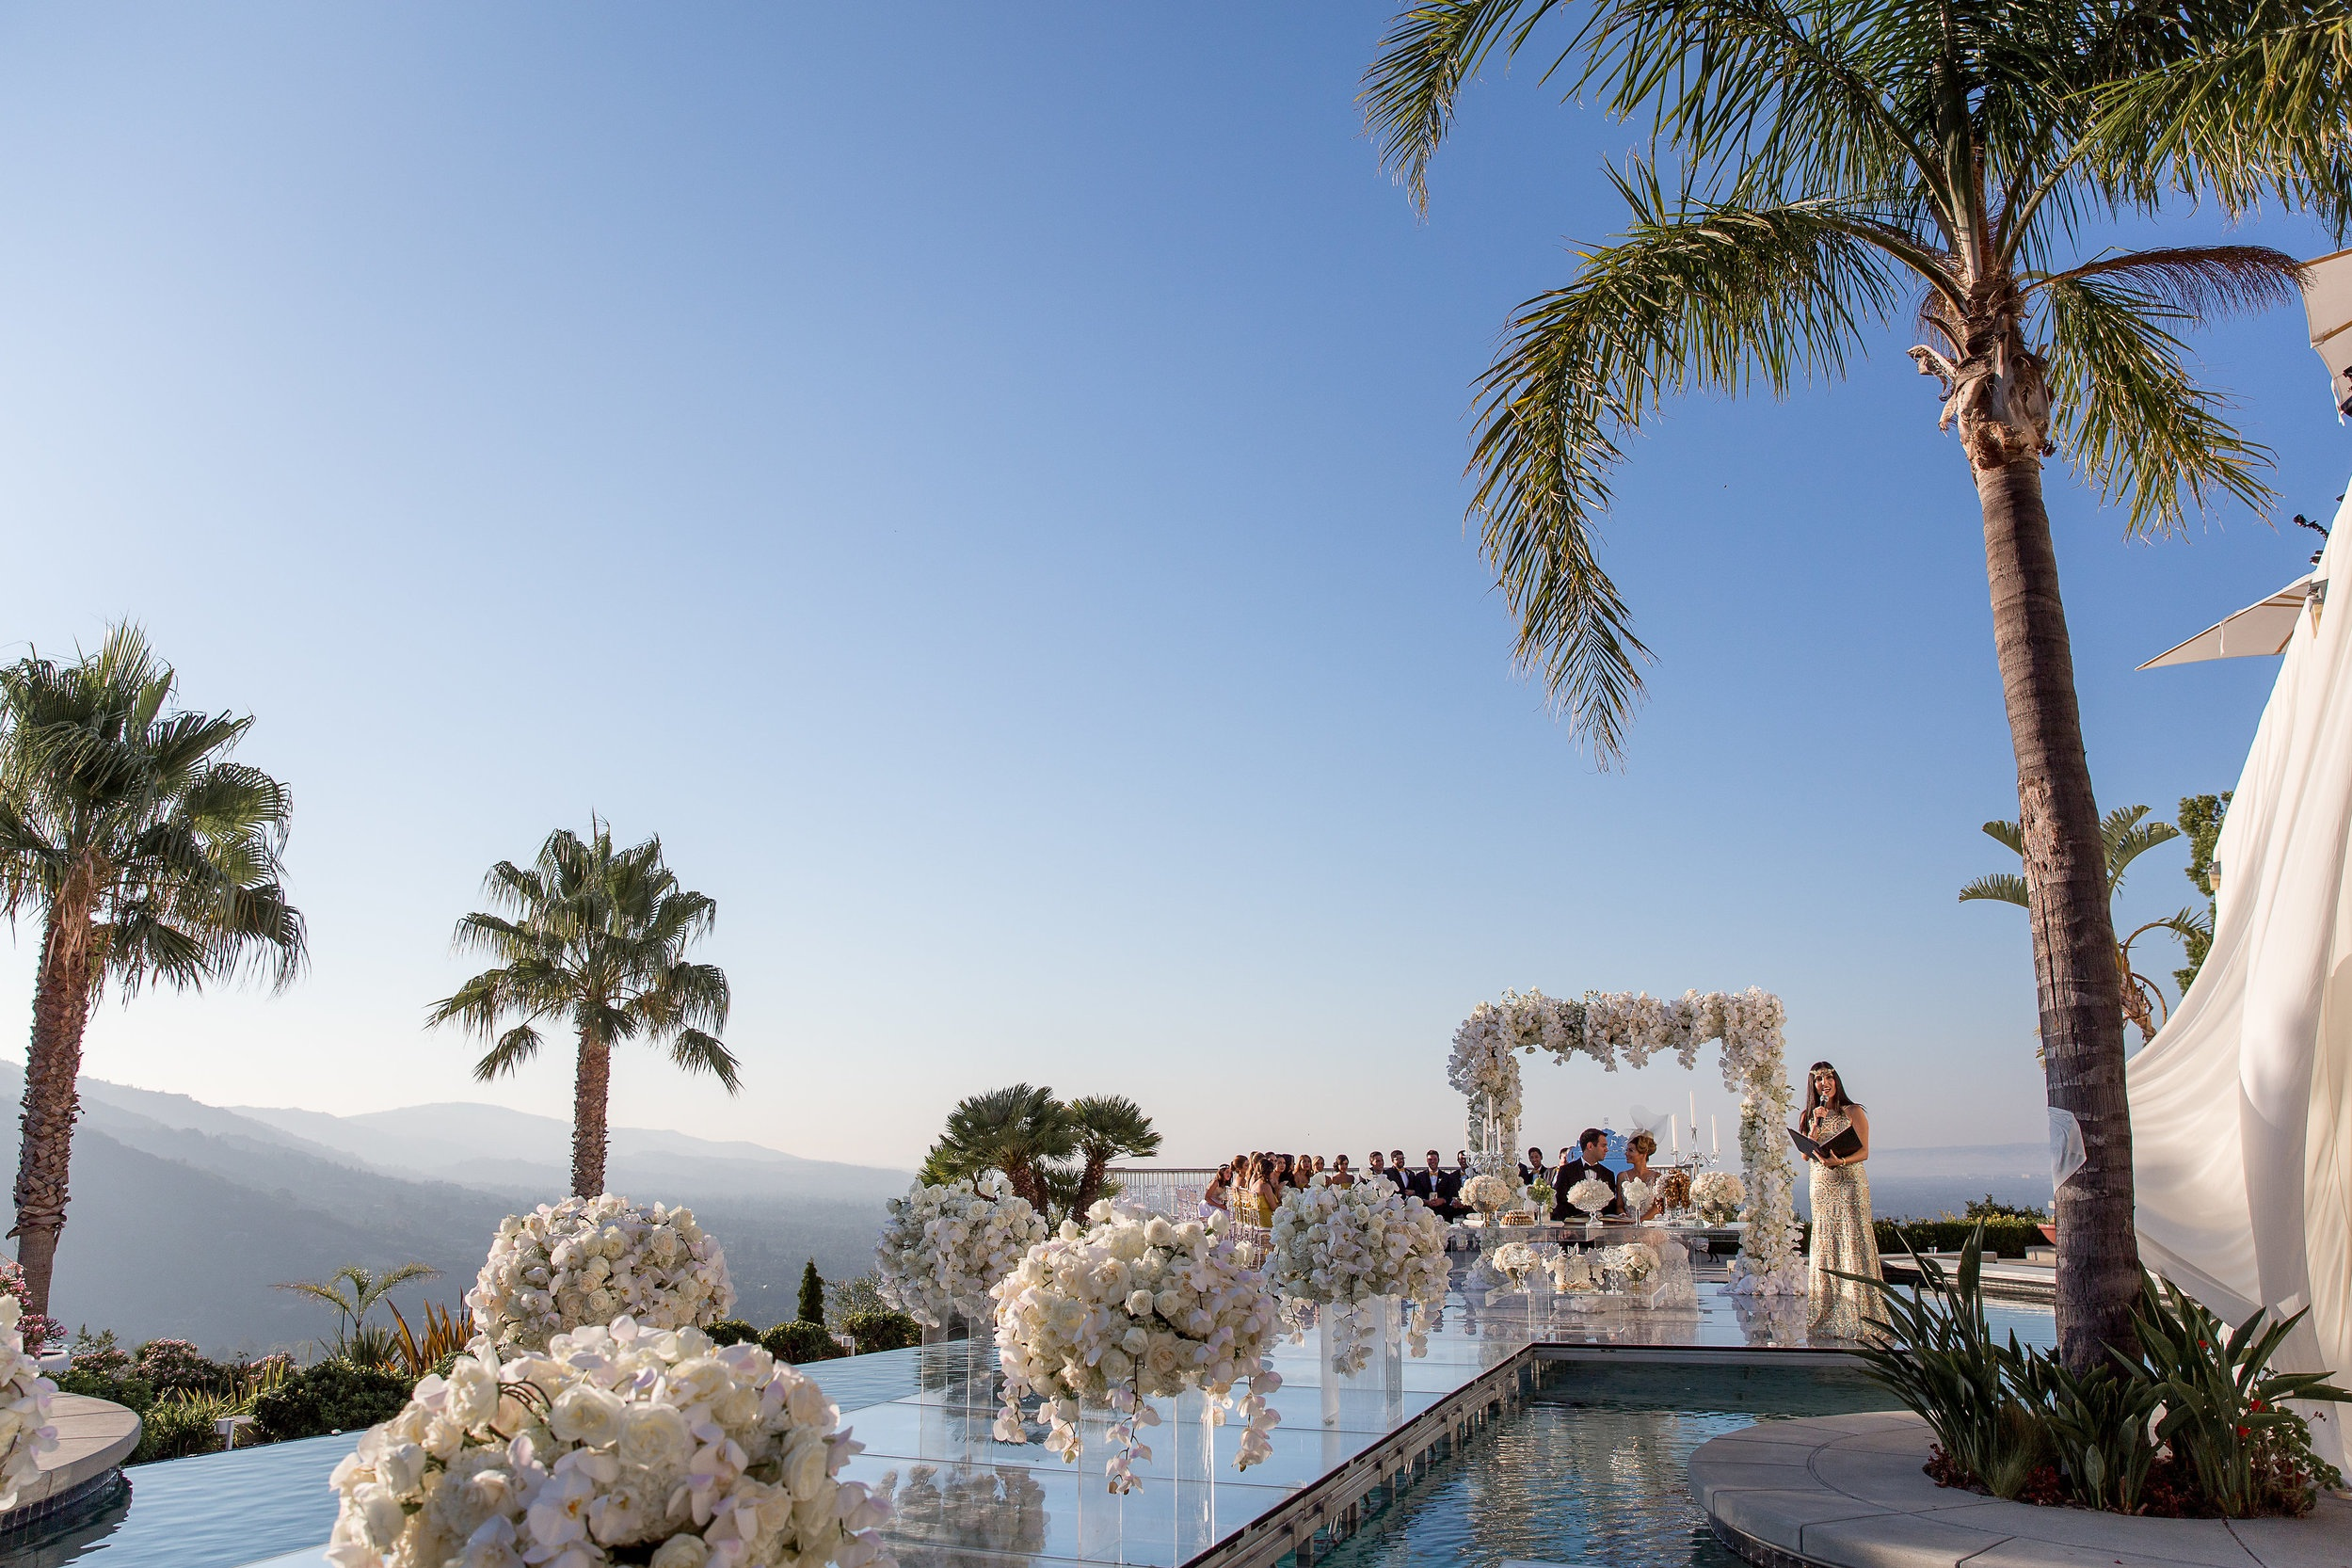 Pool Top Ceremony